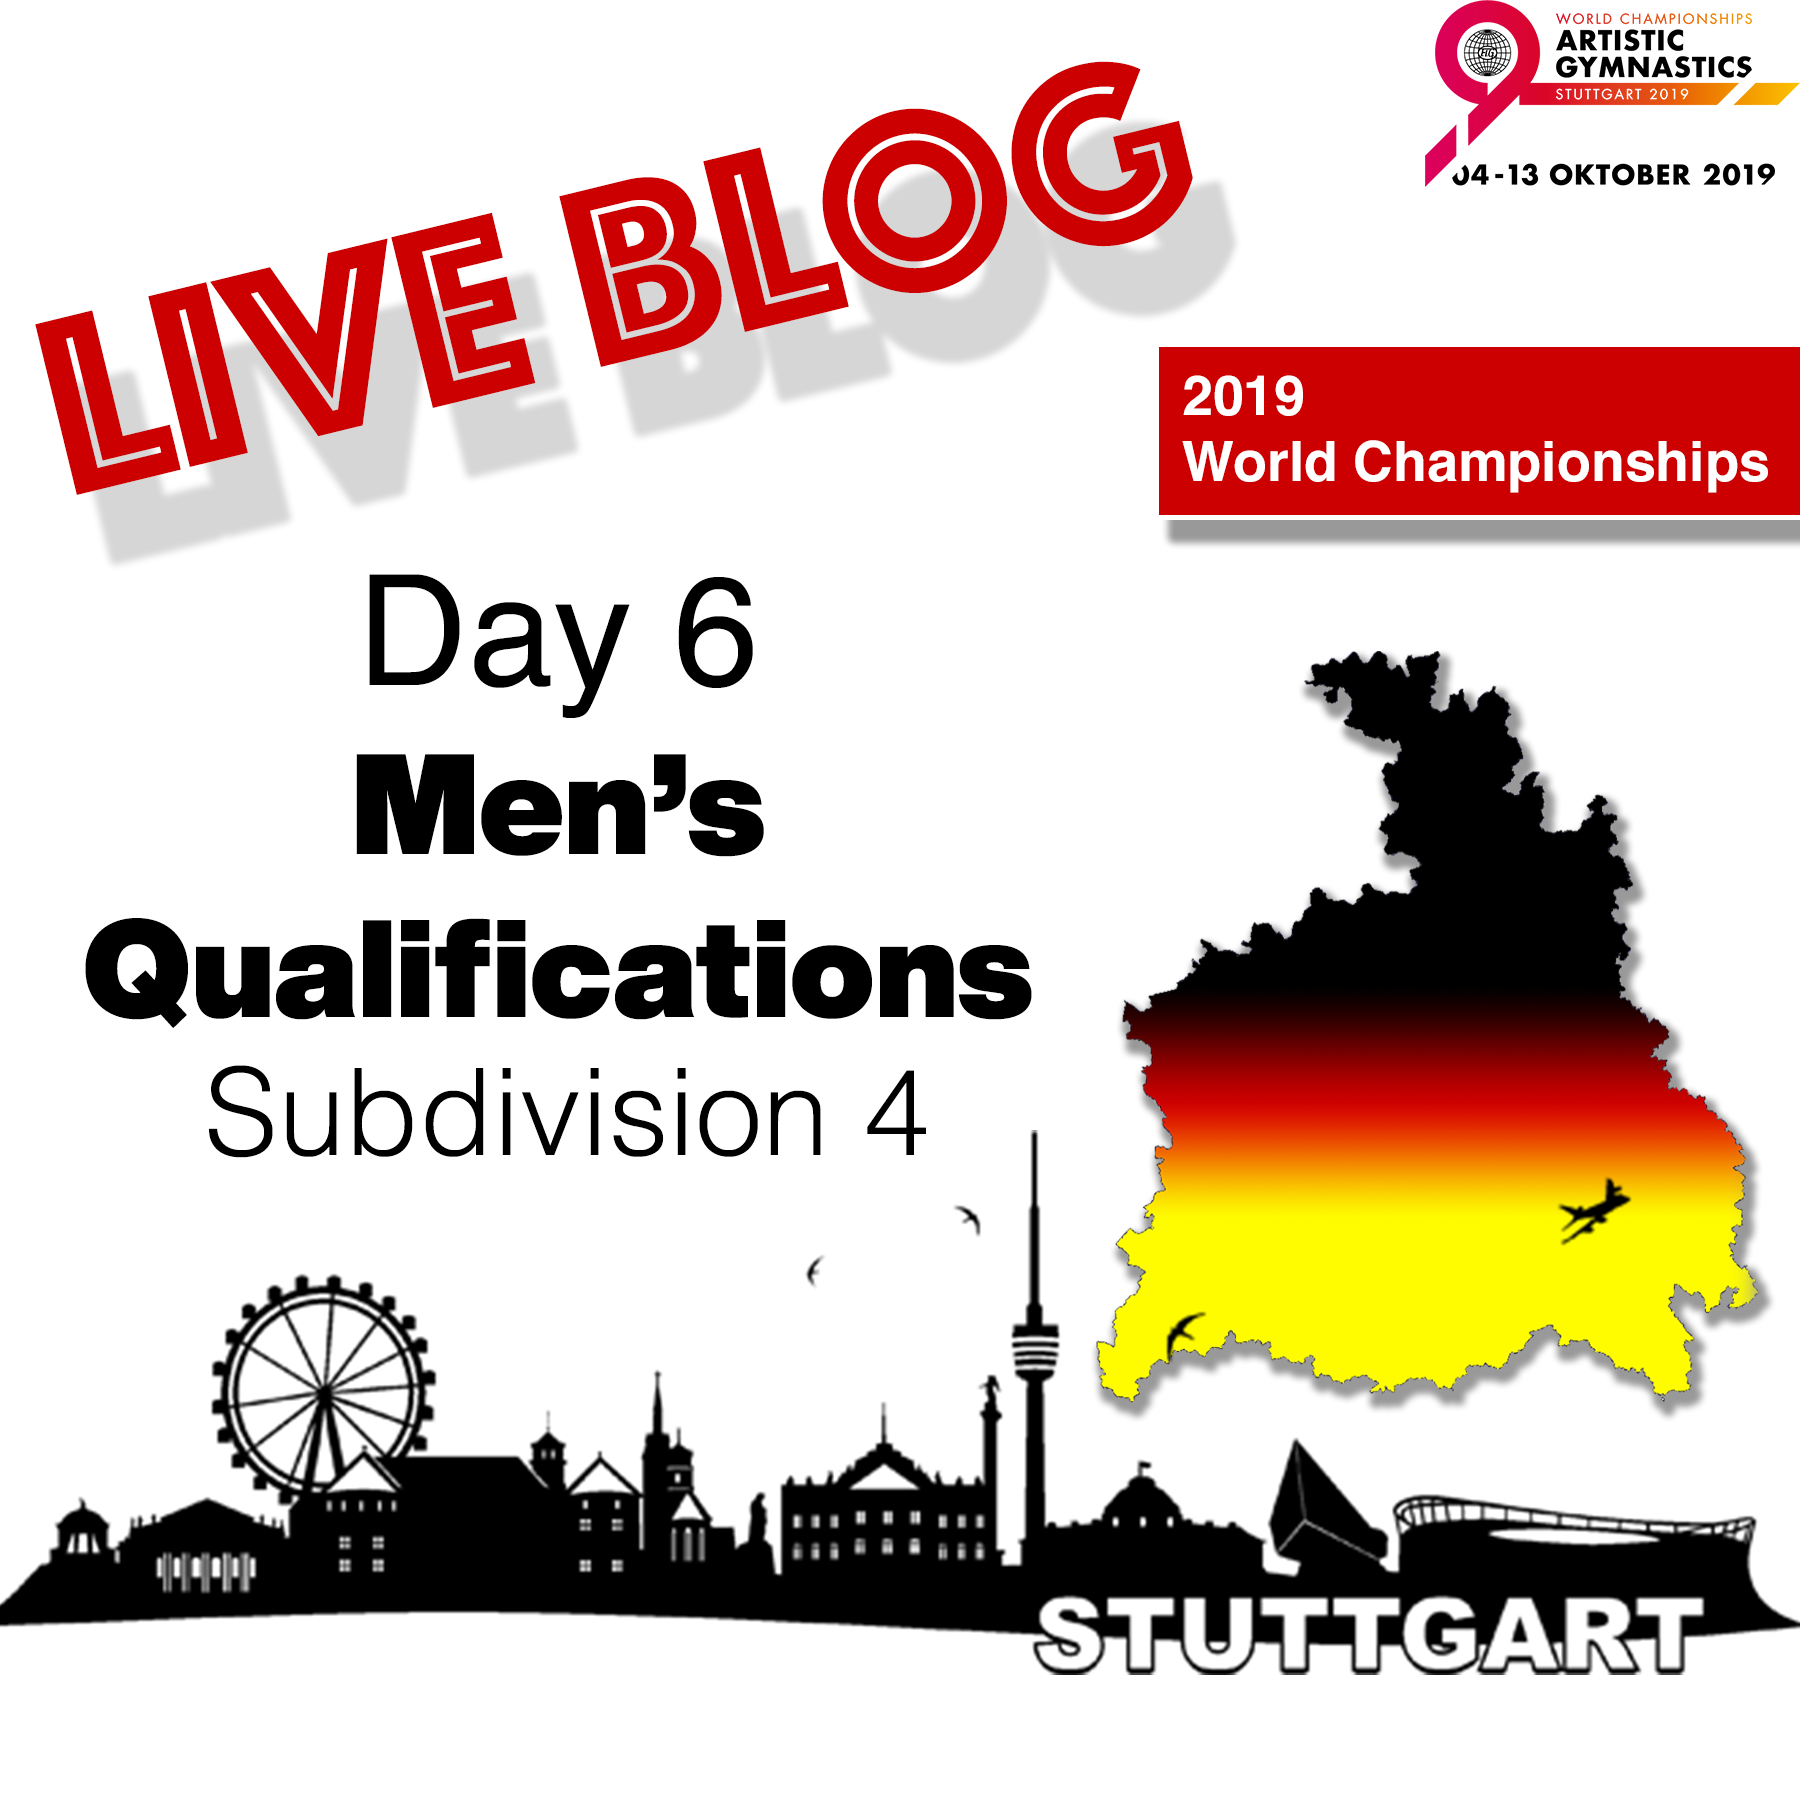 Live Blog: 2019 World Championships – MAG Qualifications – Sub Division 4, Oct. 6th